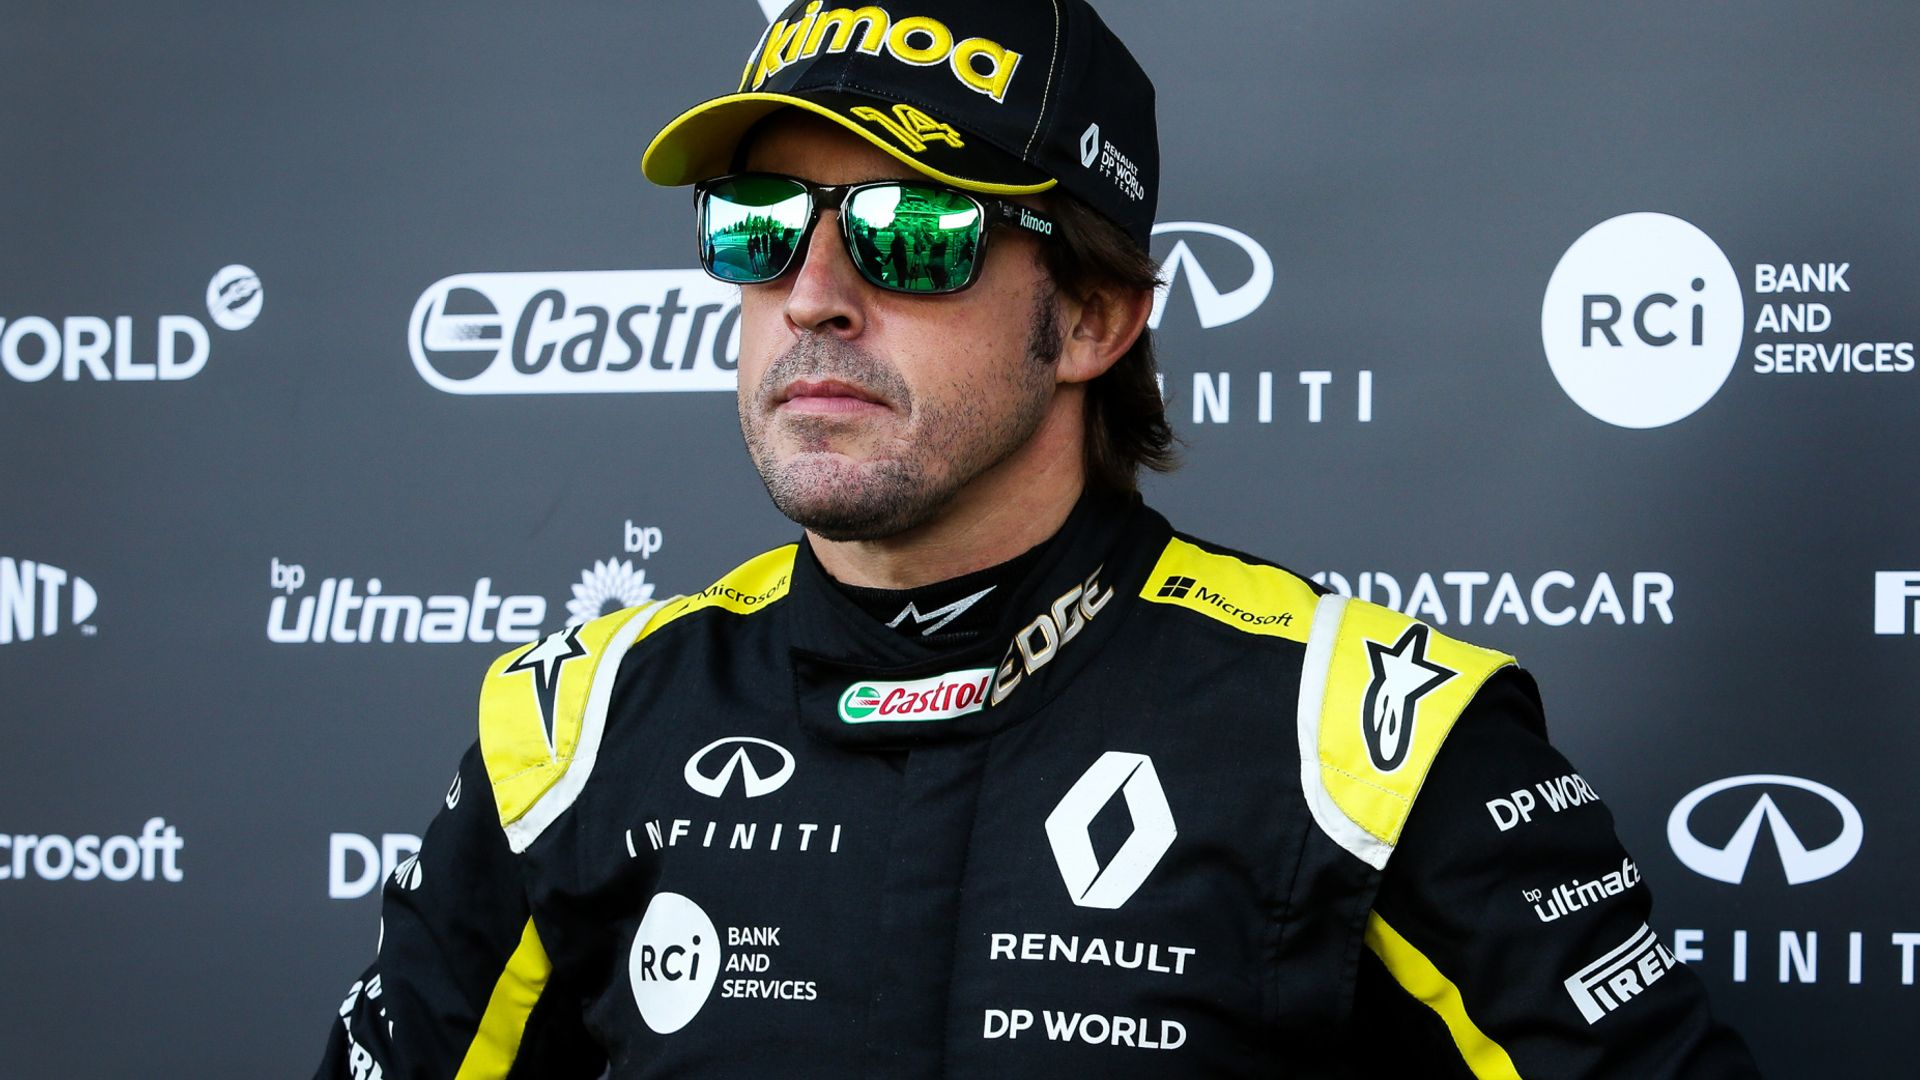 Alonso 'excited' as Renault make F1 charge